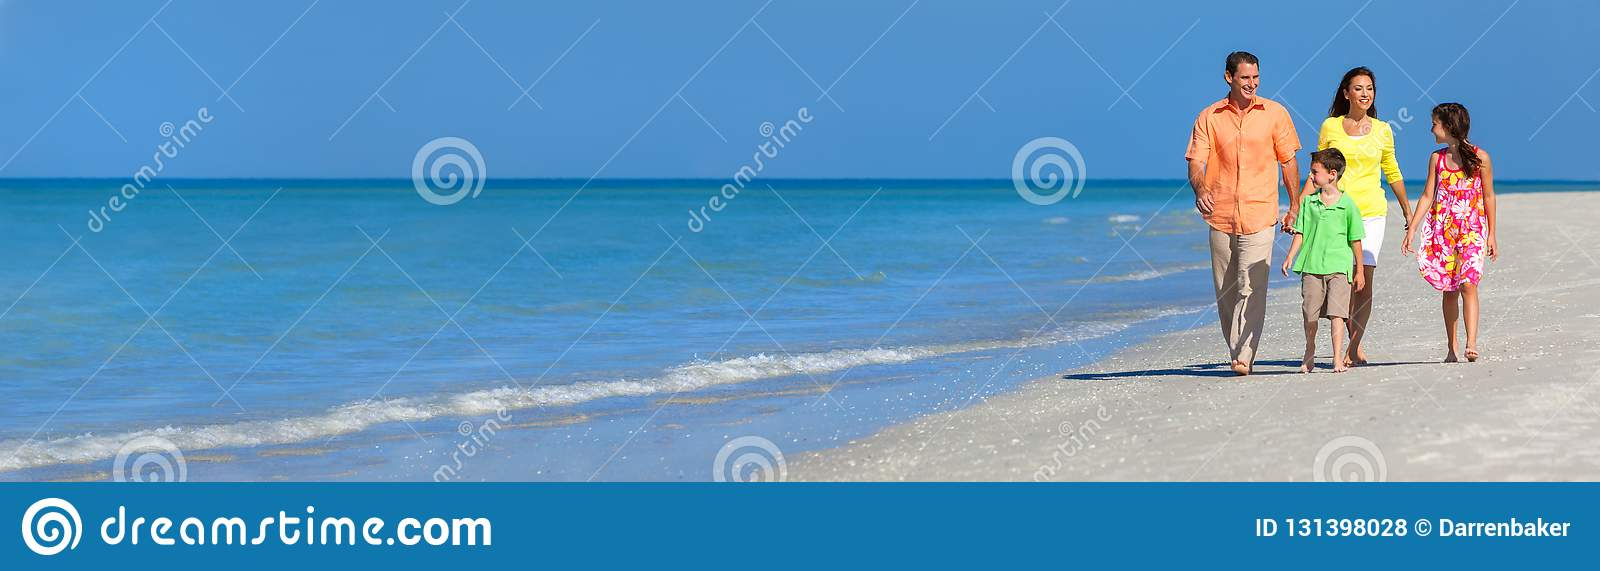 Web banner panoramic happy family of mother, father and two children, son and daughter, walking on a beach